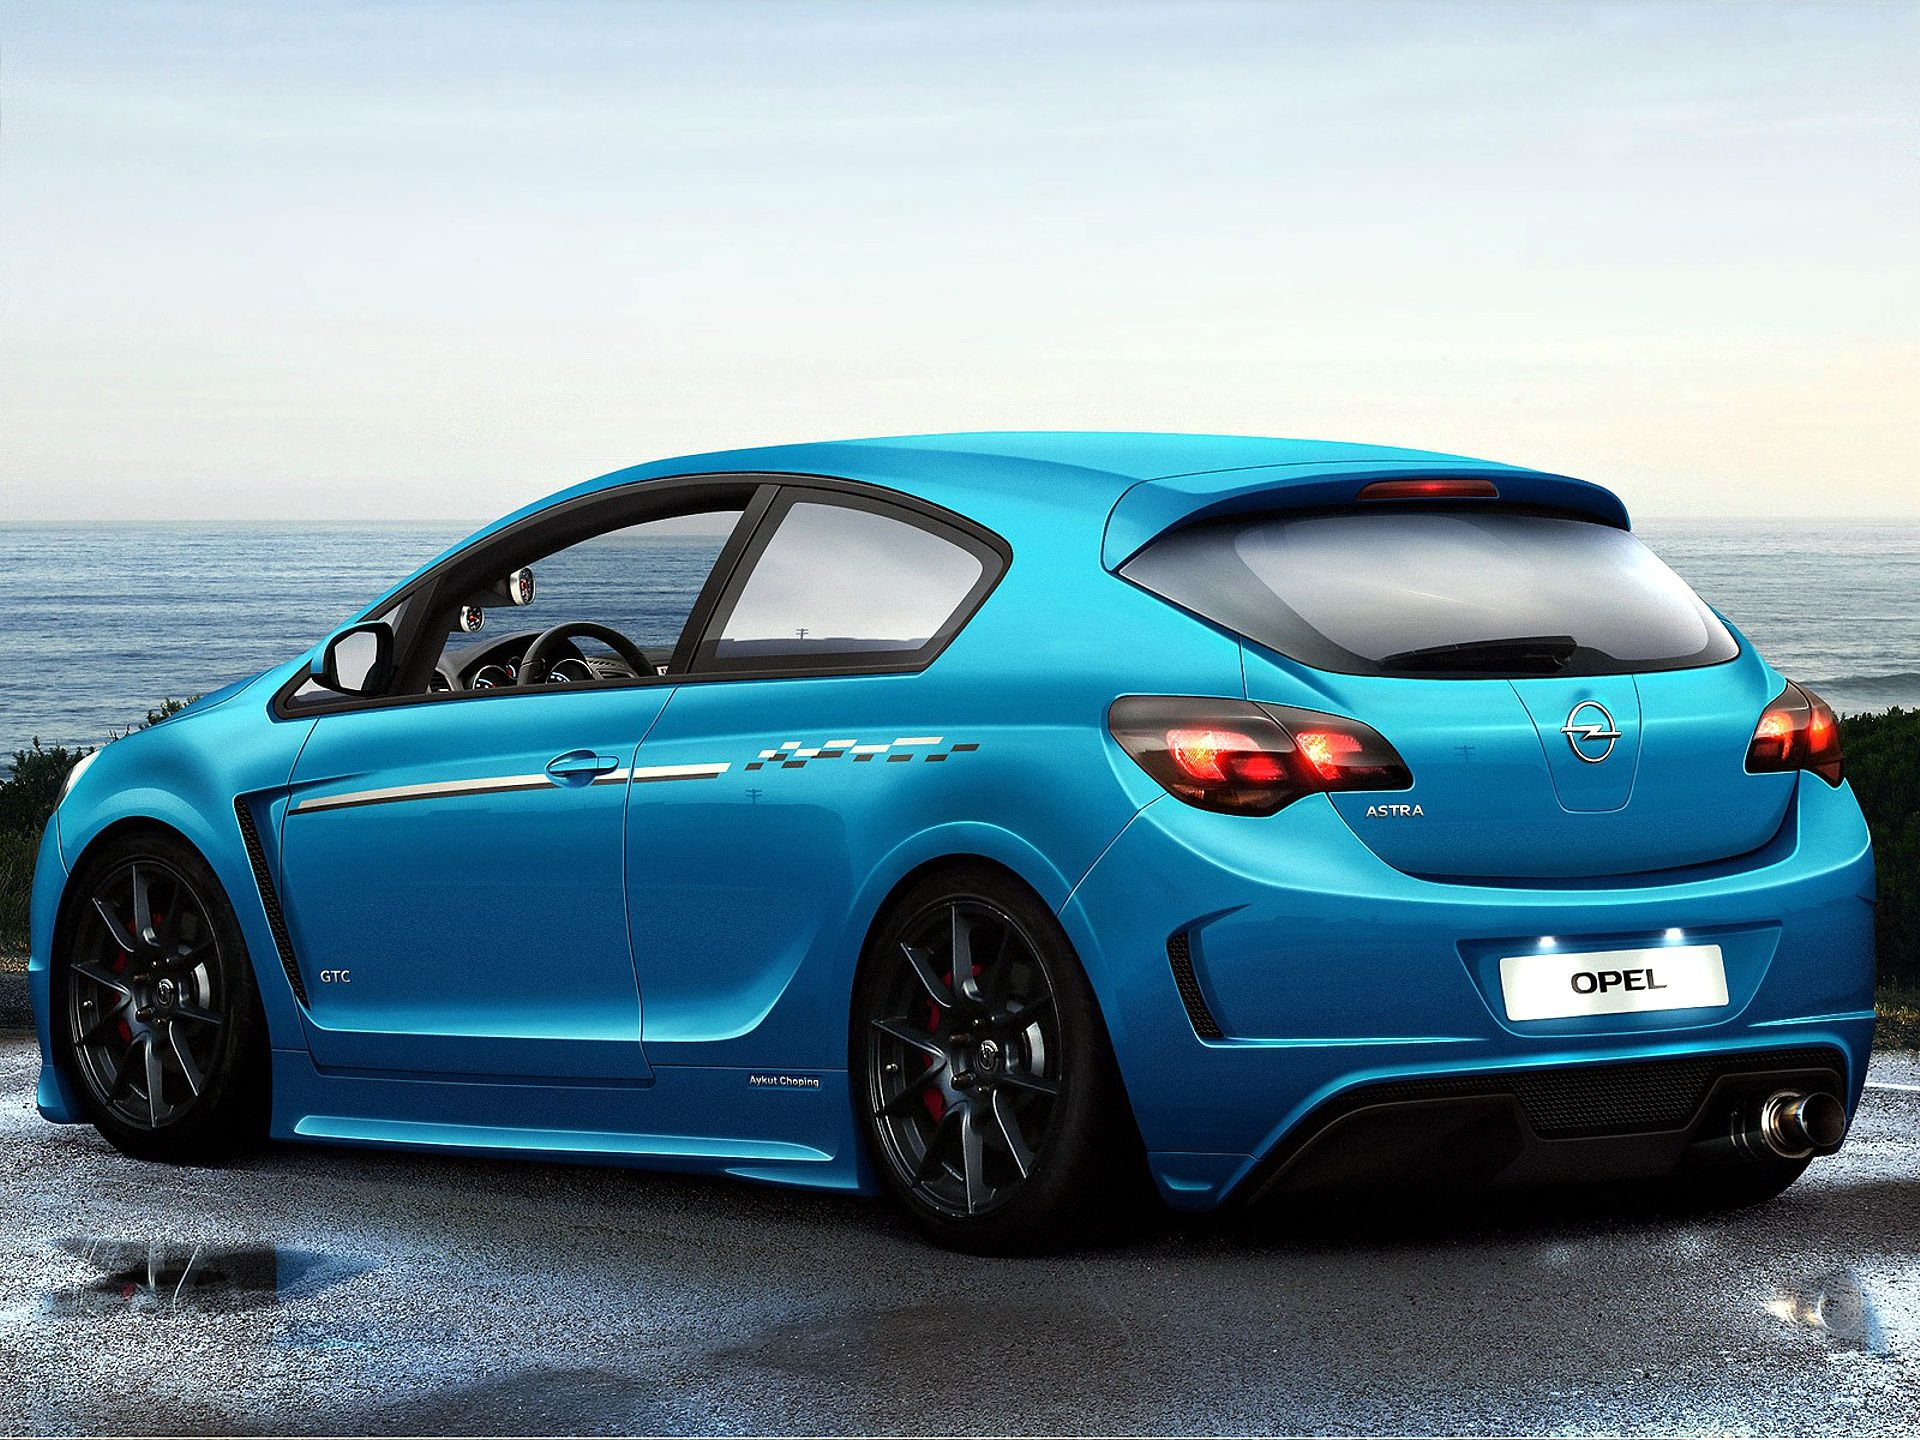 Opel astra coupe gtc, wallpapers backgrounds -> www.yours-cars.eu ...